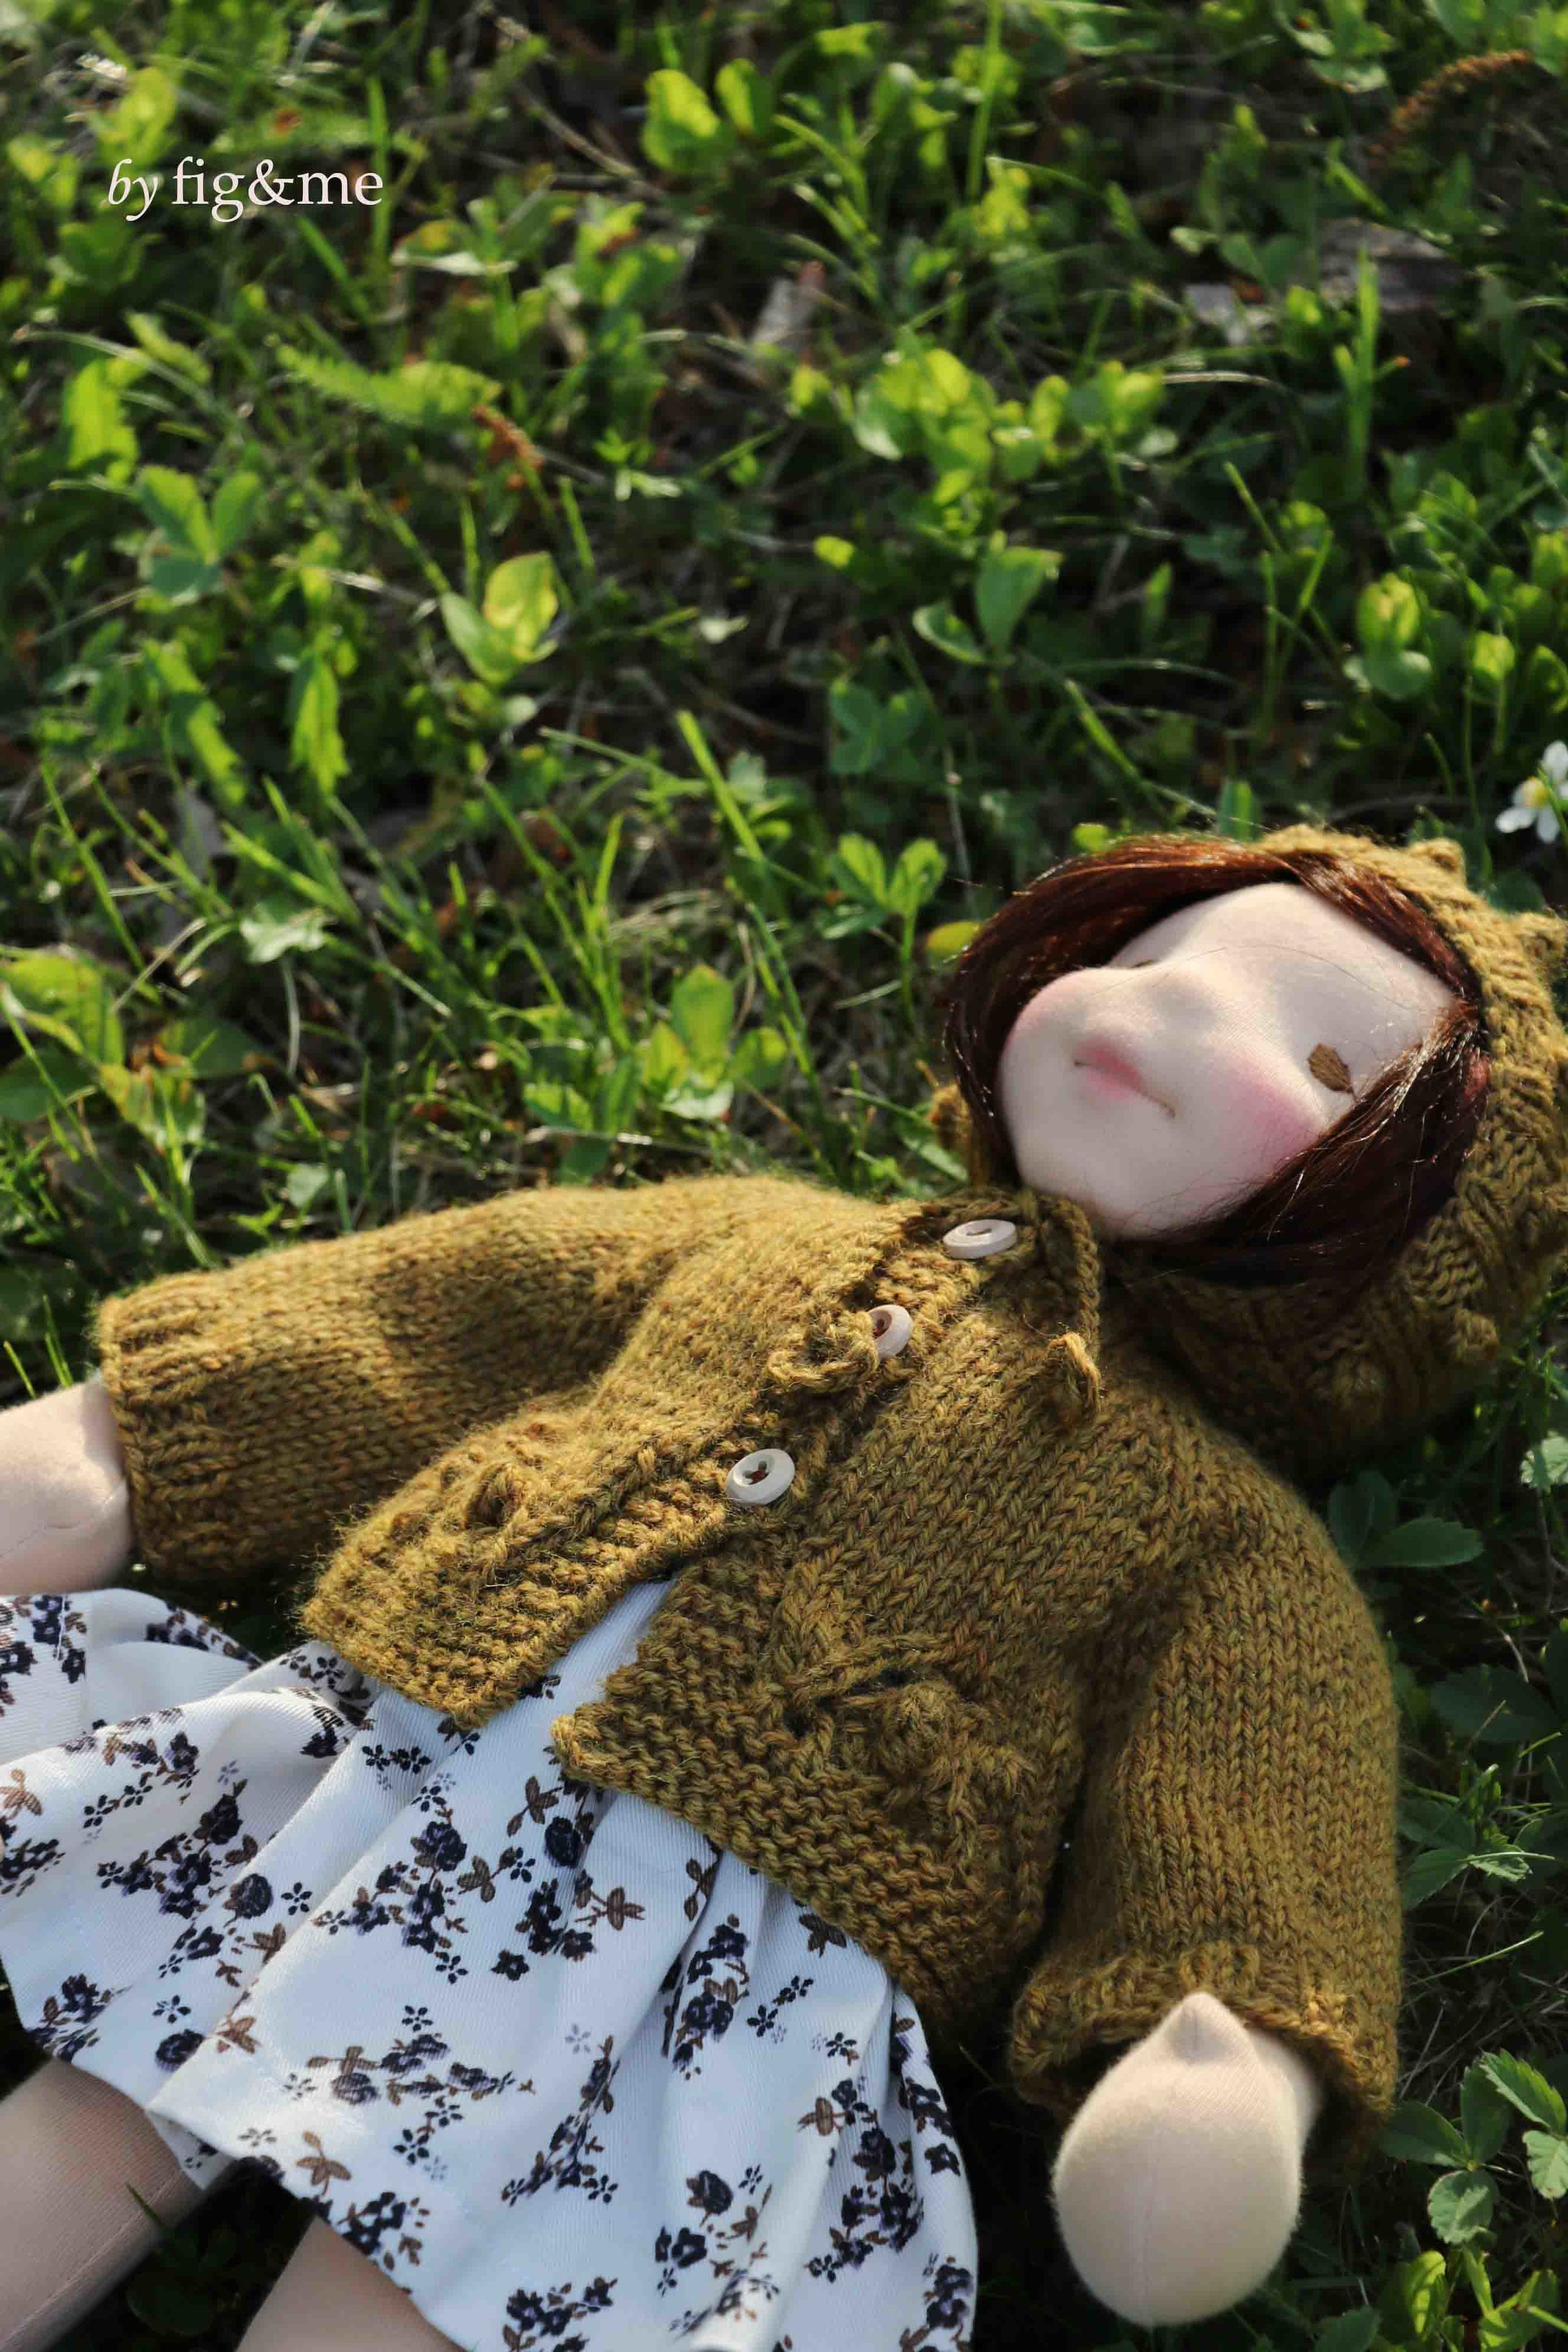 Maggie admiring the chickadees in our garden, art doll by fig and me.